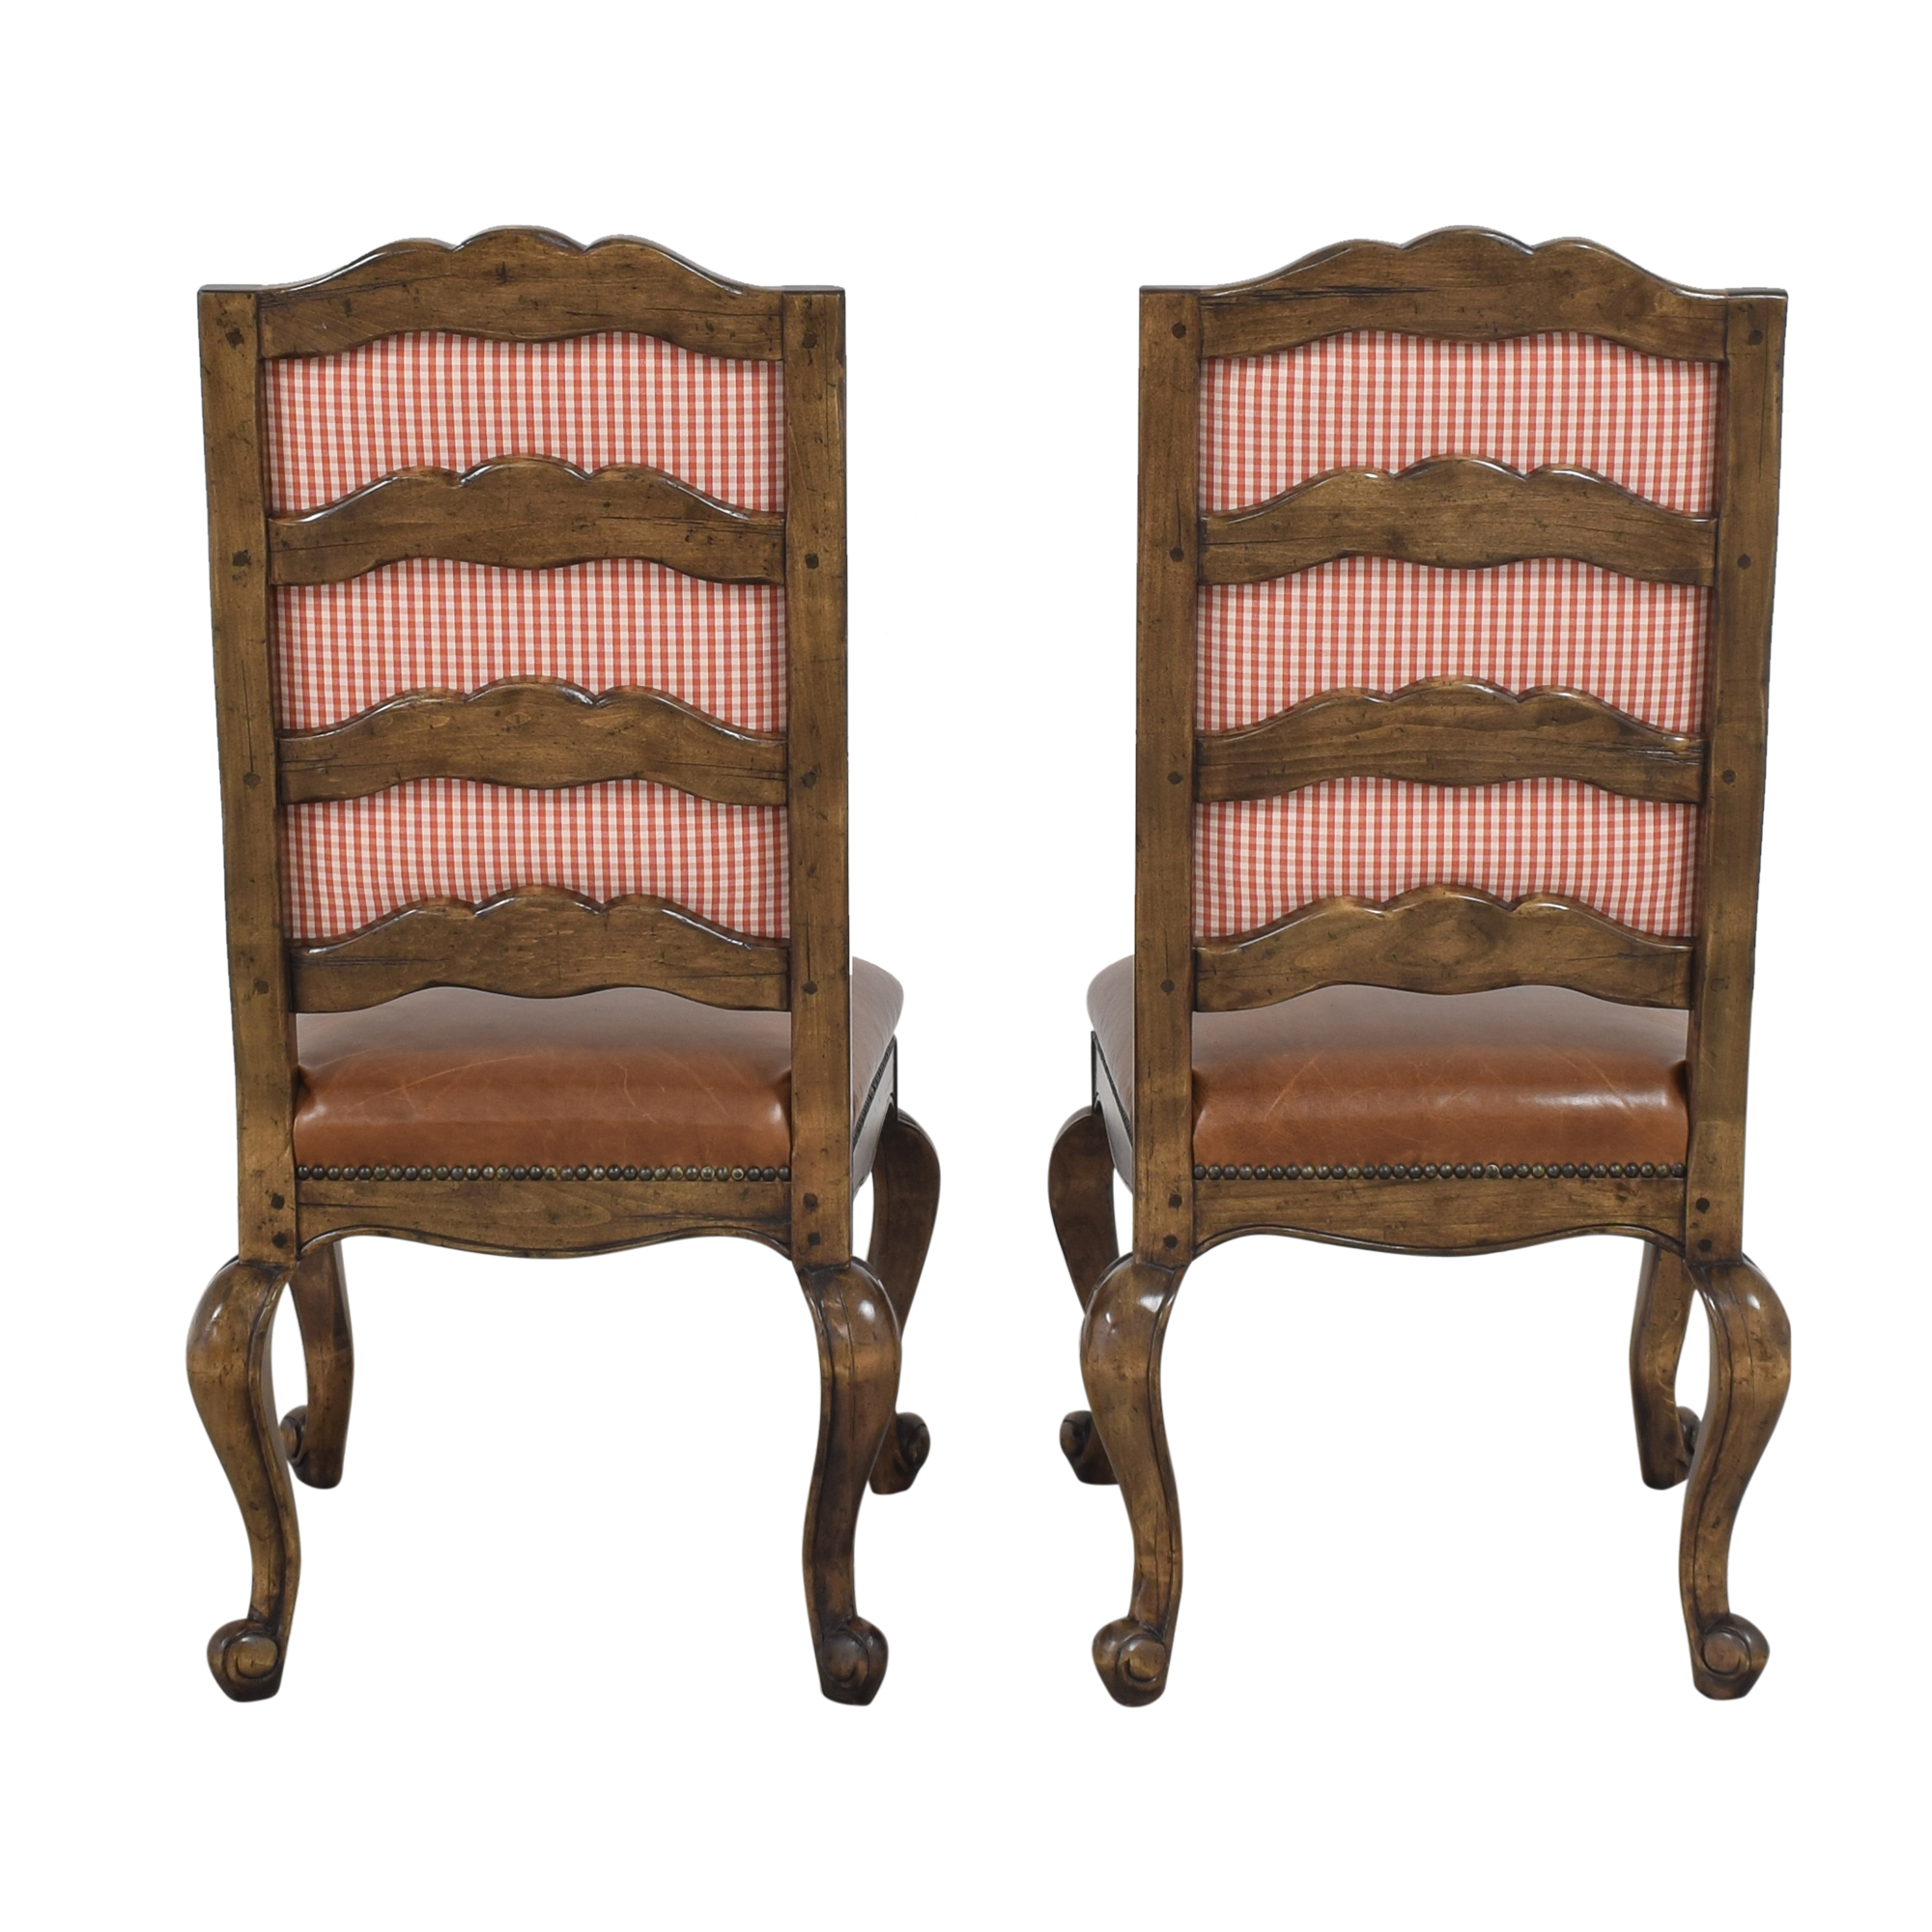 Cabriole Dining Chairs